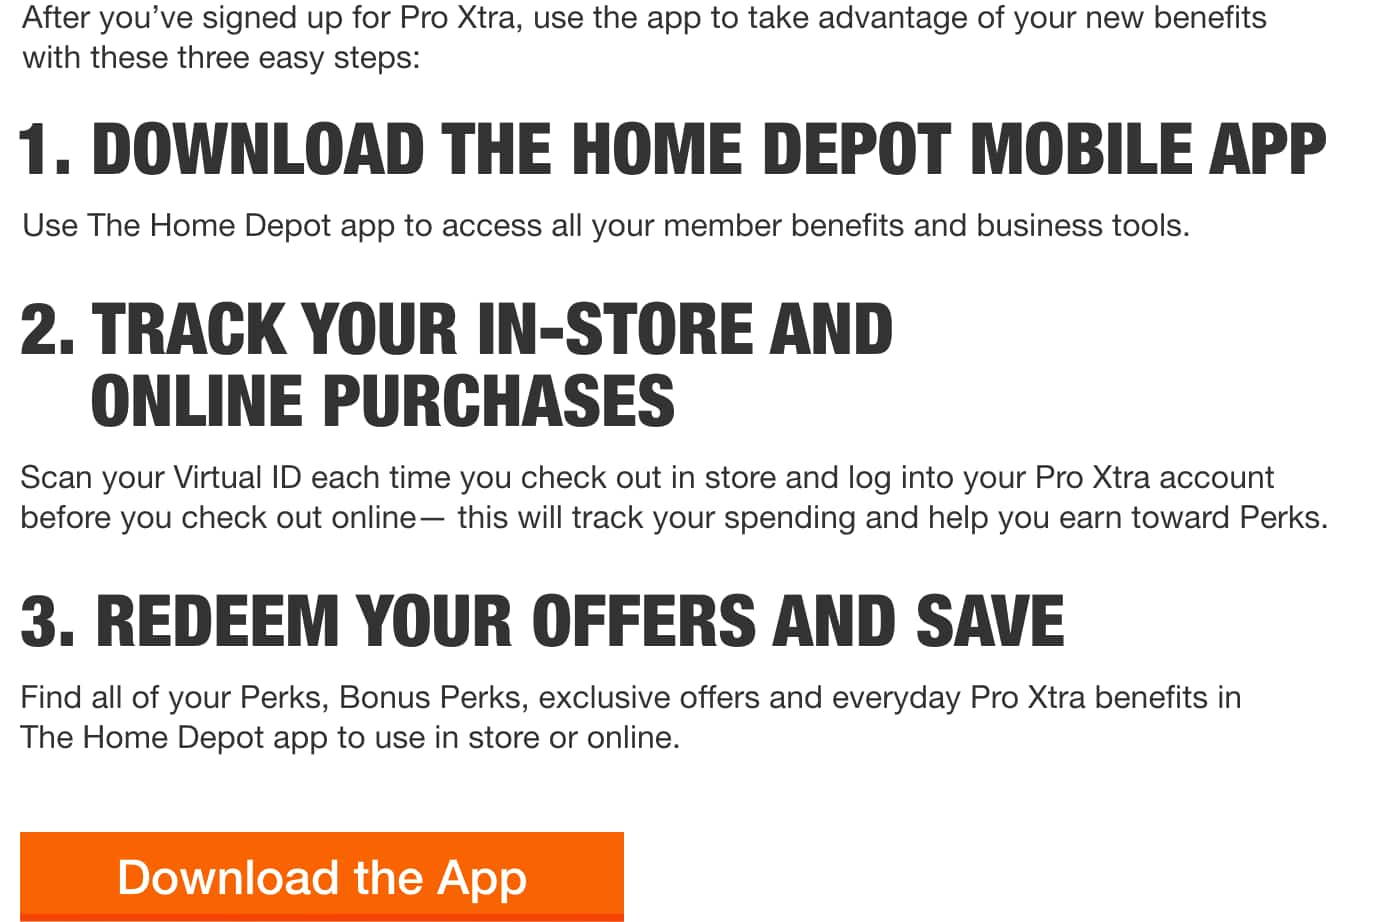 After you've signed up for Pro Xtra, use the app to take advantage of your new benefits with these three easy steps: